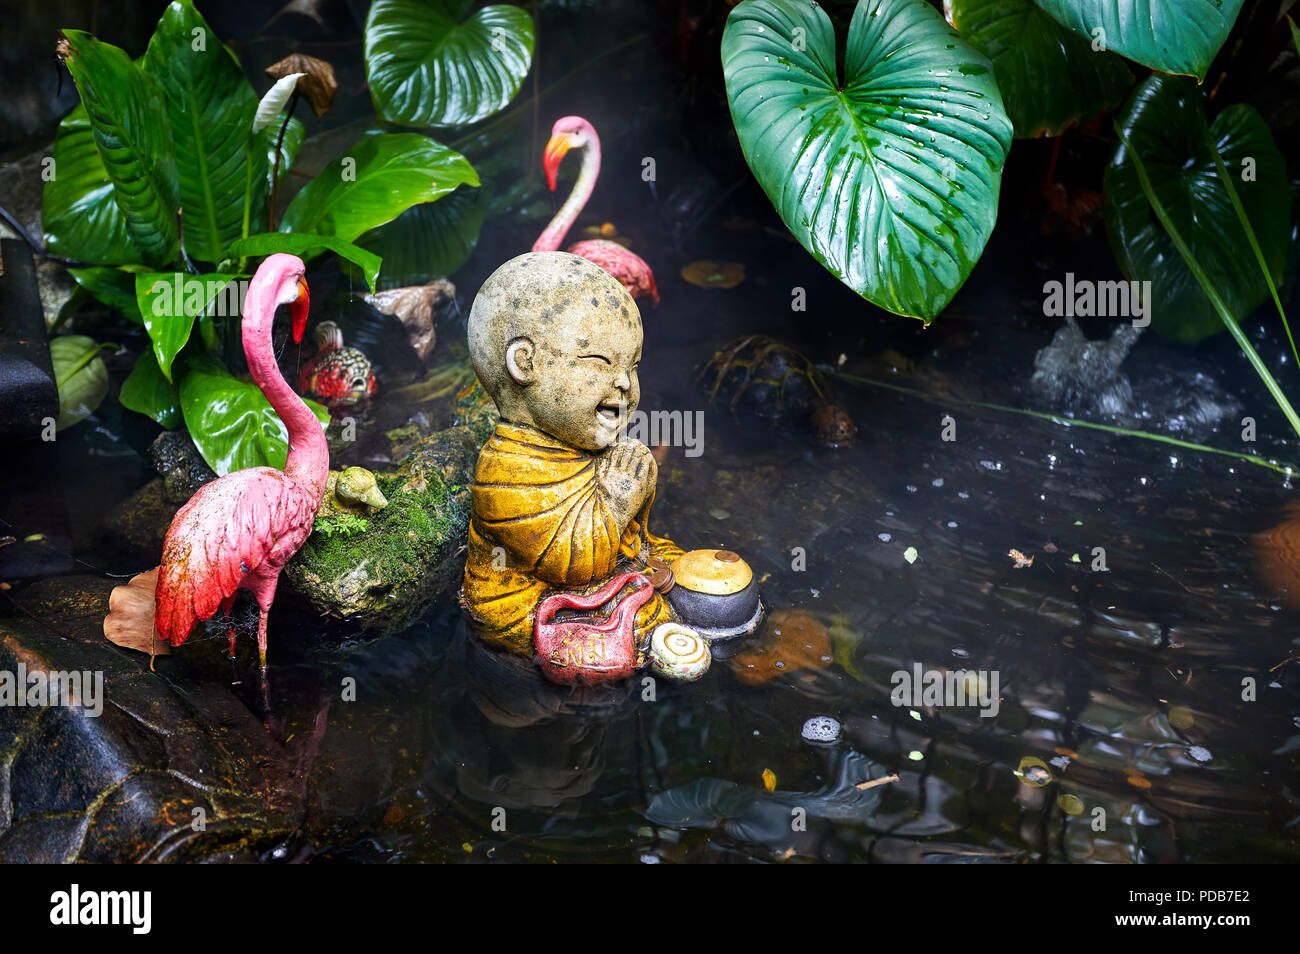 Statue of little Buddhist monk in the tropical garden with pink flamingo in Wat Saket Golden Mountain Temple in Bangkok Stock Photo